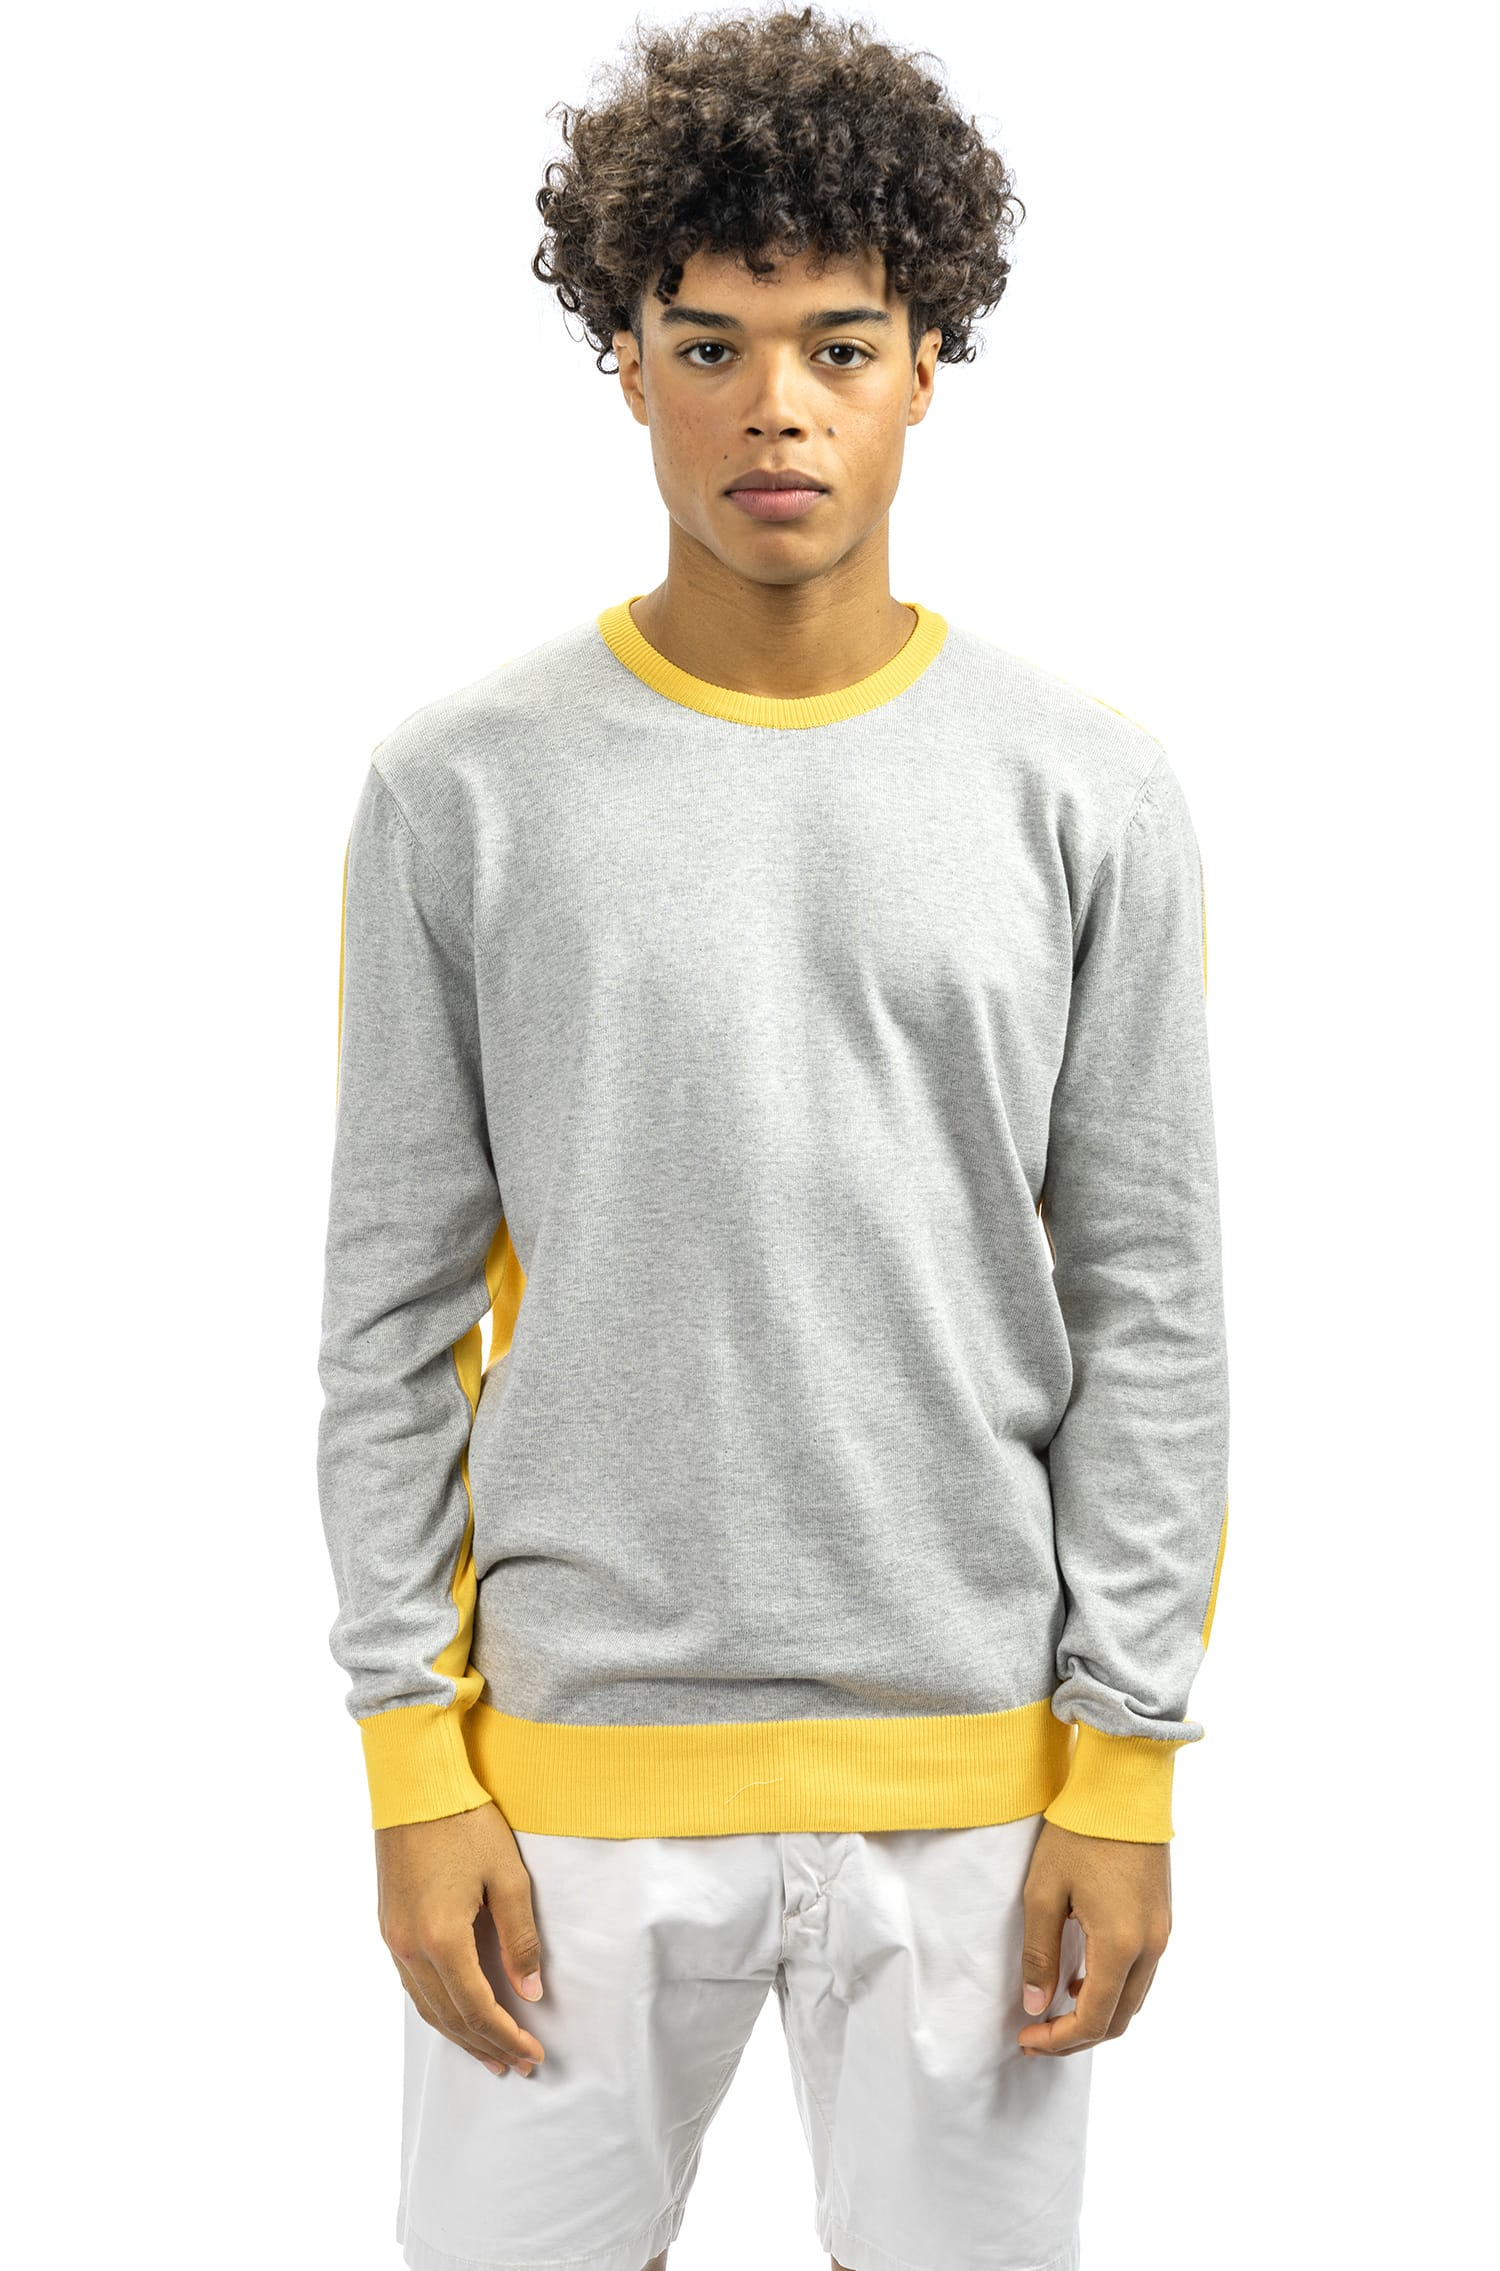 Flatlands Knitwear - Yellow